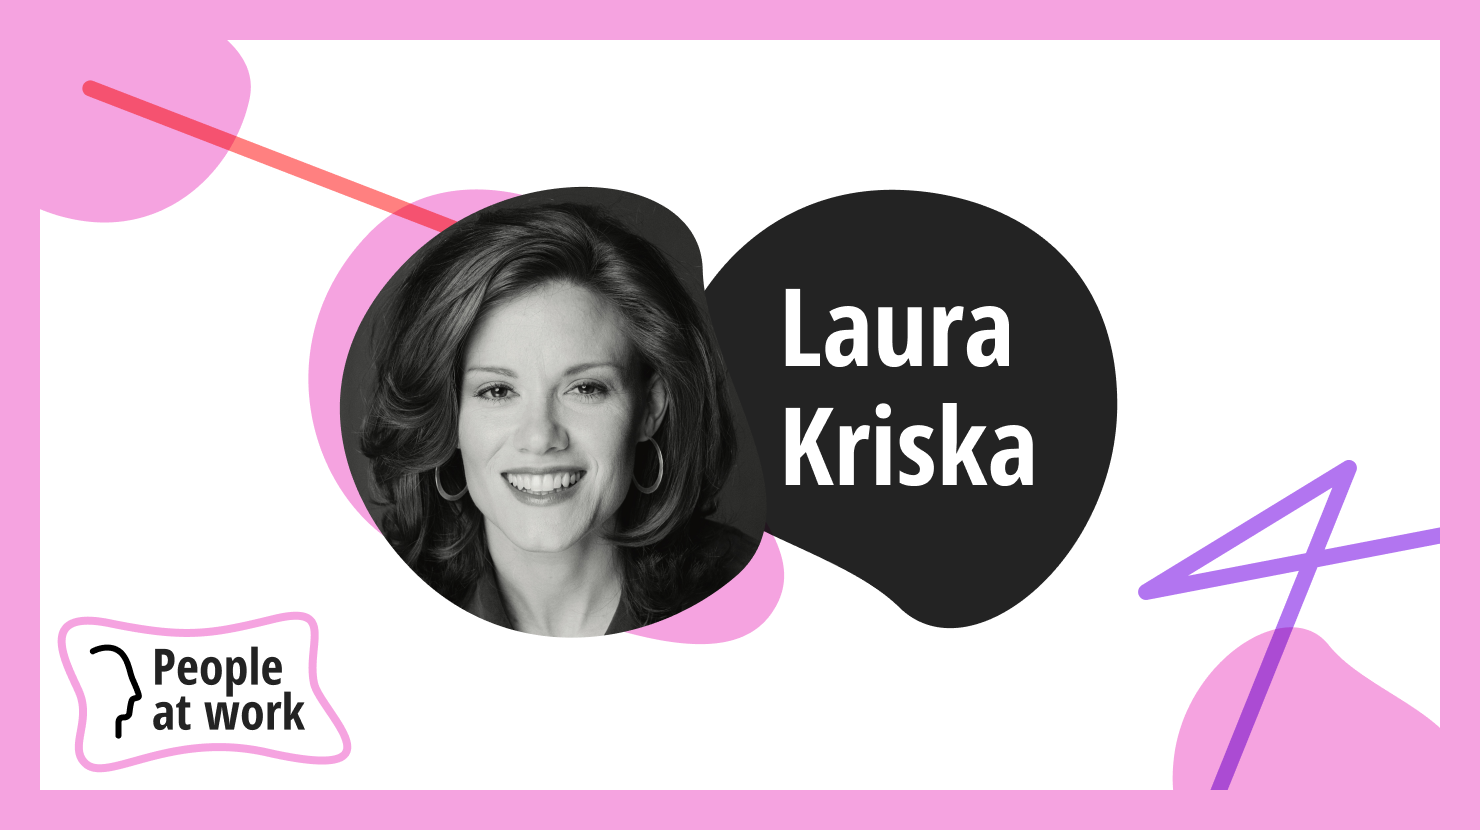 Look for invisible information when relating to others says Laura Kriska